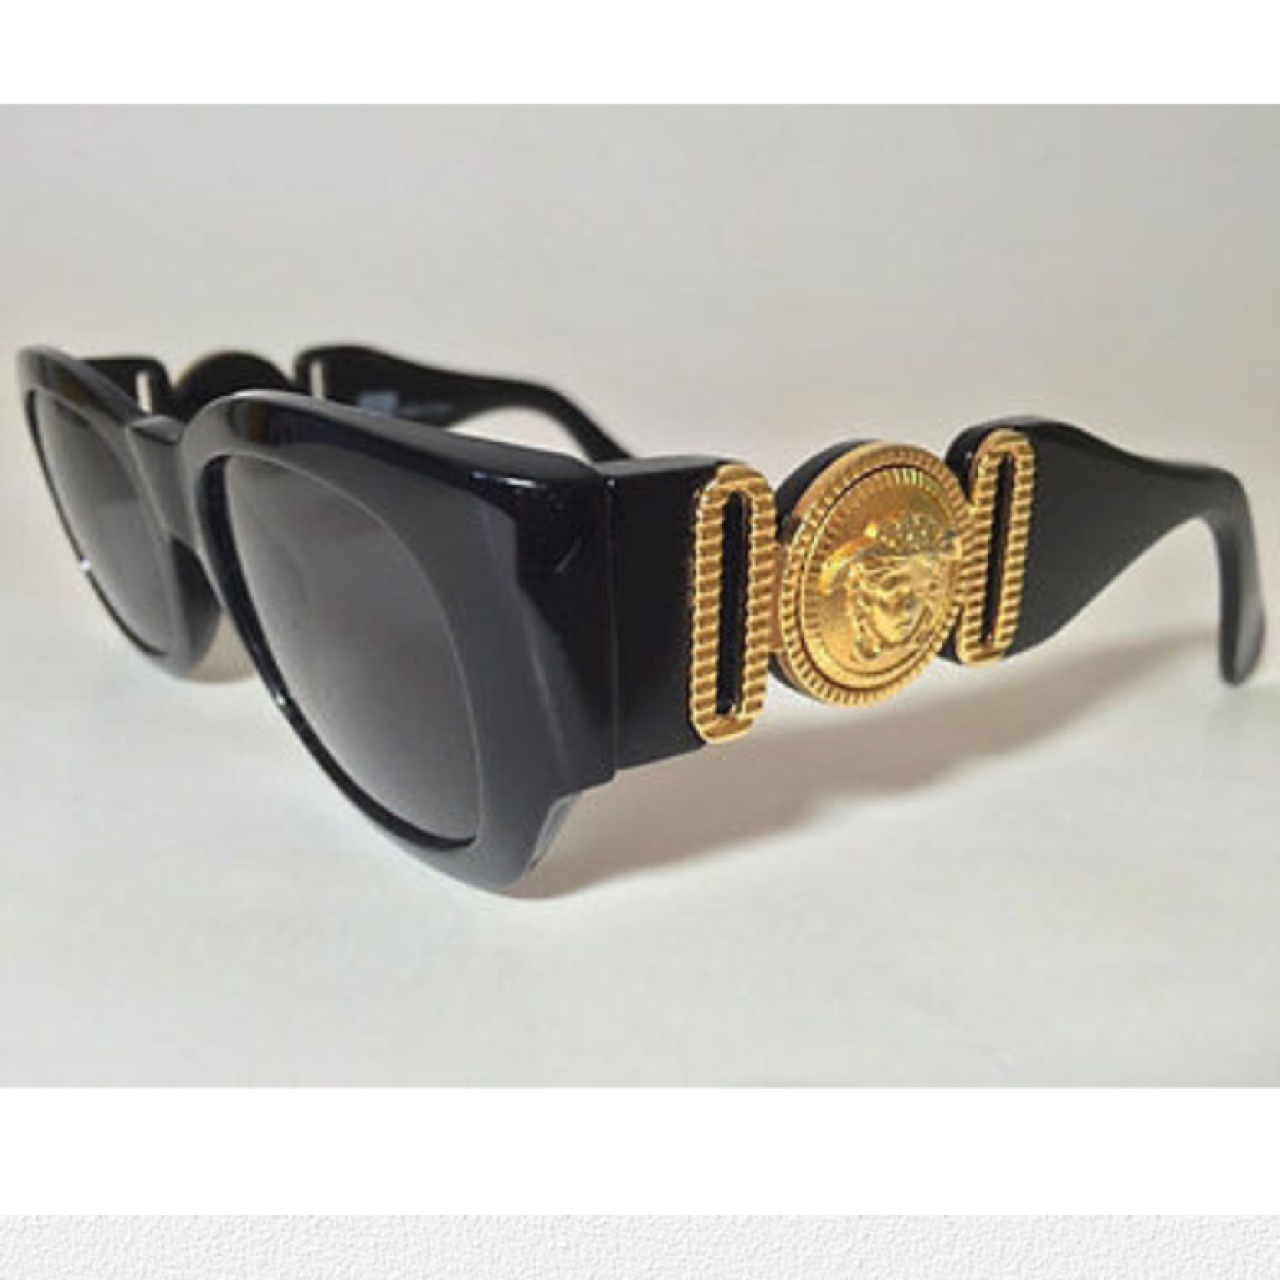 Vintage Gianni Versace Safety Pin Sunglasses Mod 427 Col 279: Vintage Gianni Versace Sunglasses MOD 413/a (same...